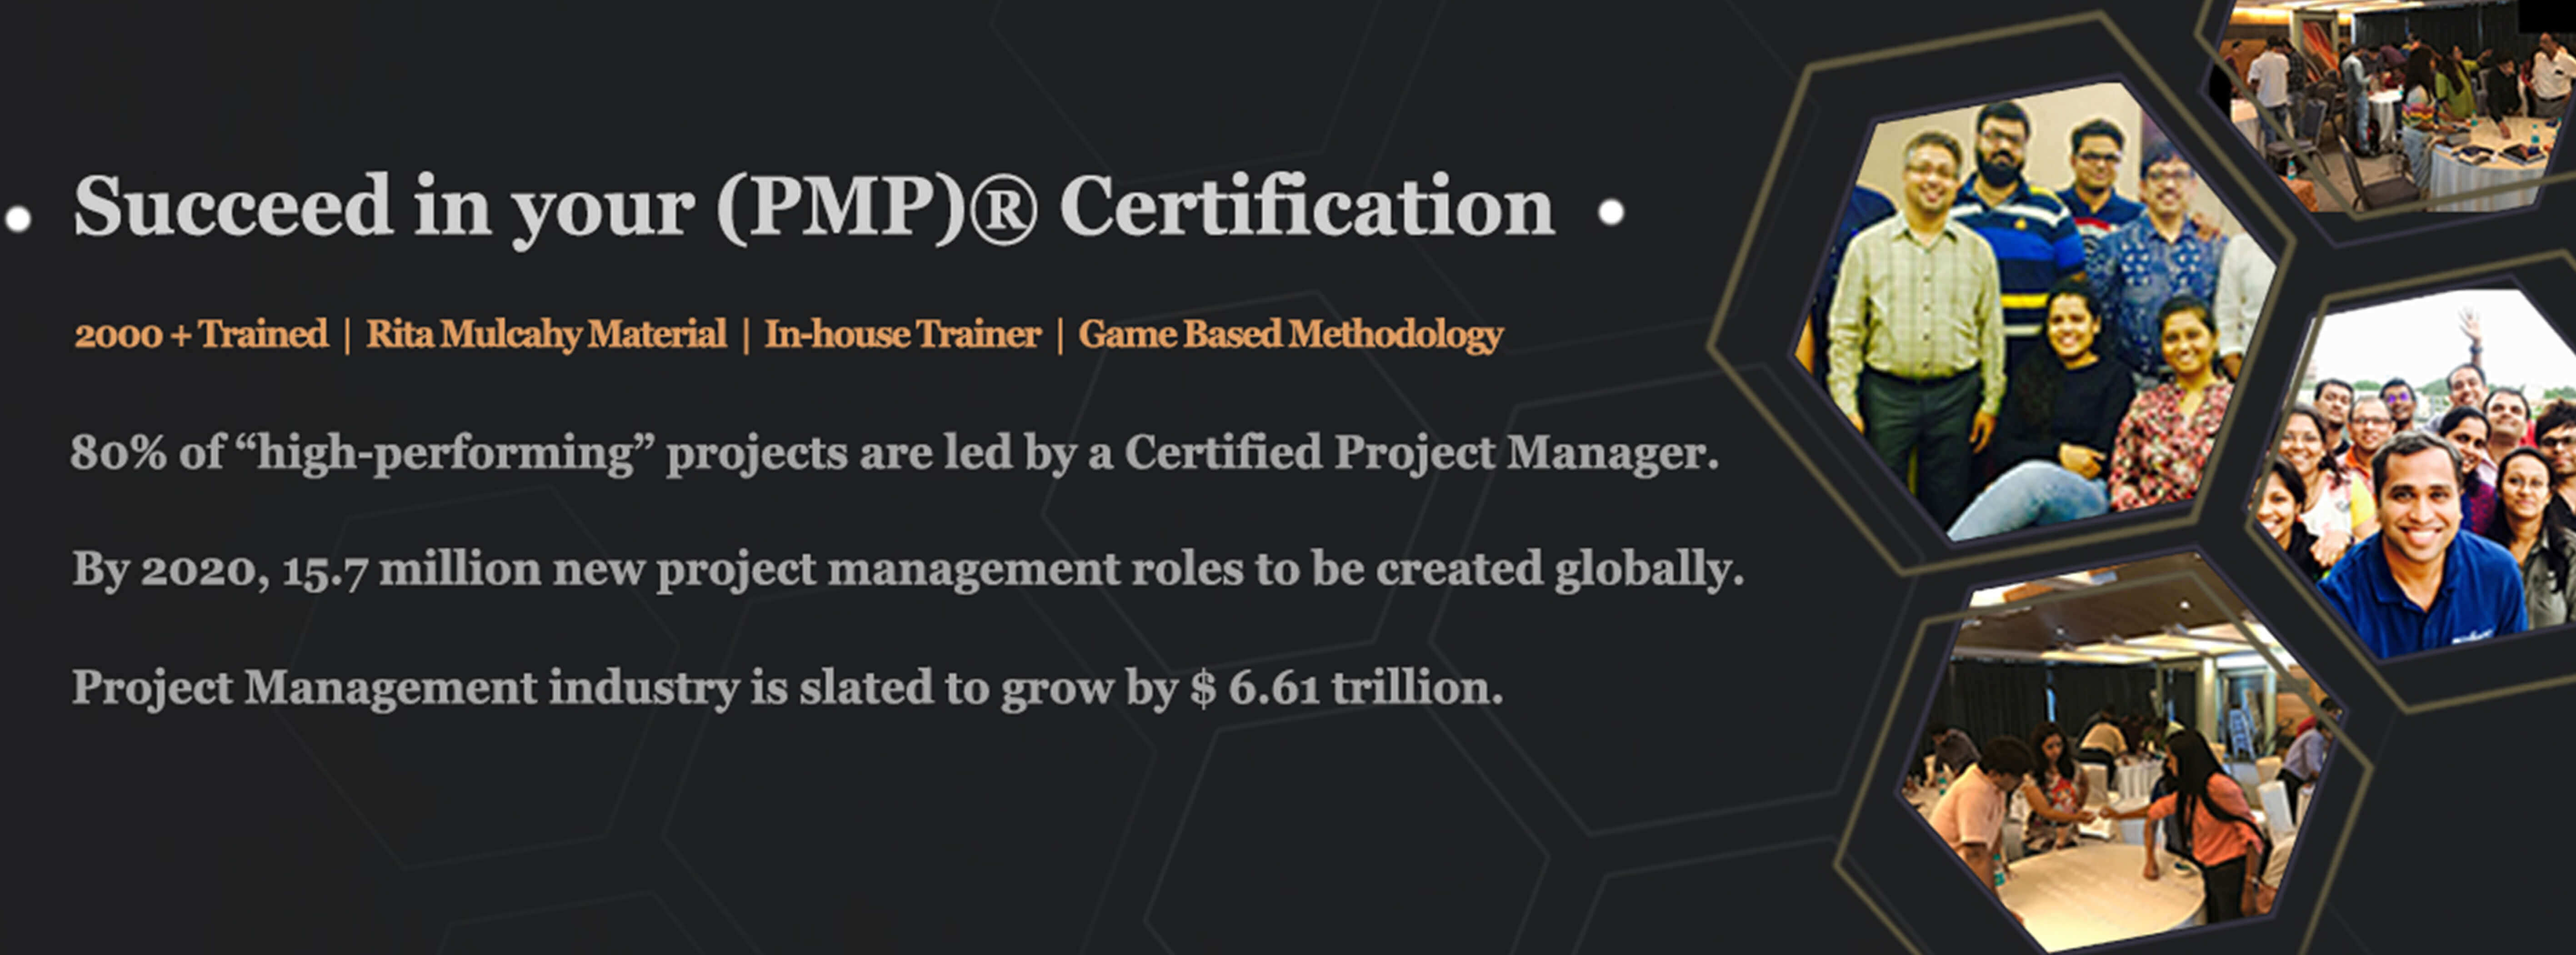 Pmp certification training course in pune prothoughts 1betcityfo Gallery